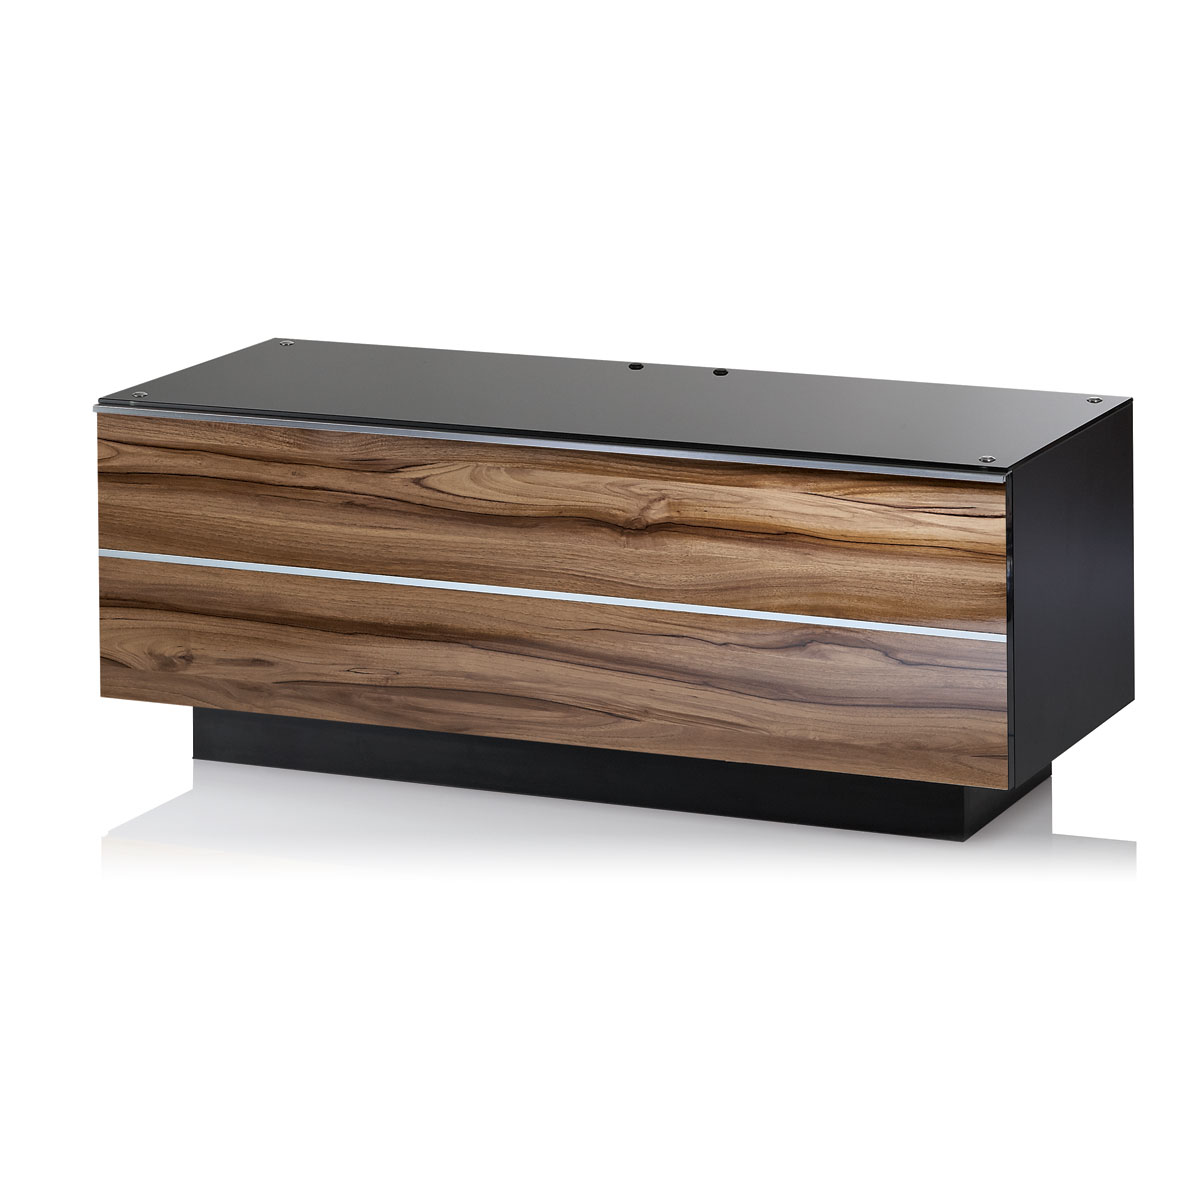 Ultimate g s 110 bois meuble tv ultimate sur for Meuble de tv en bois